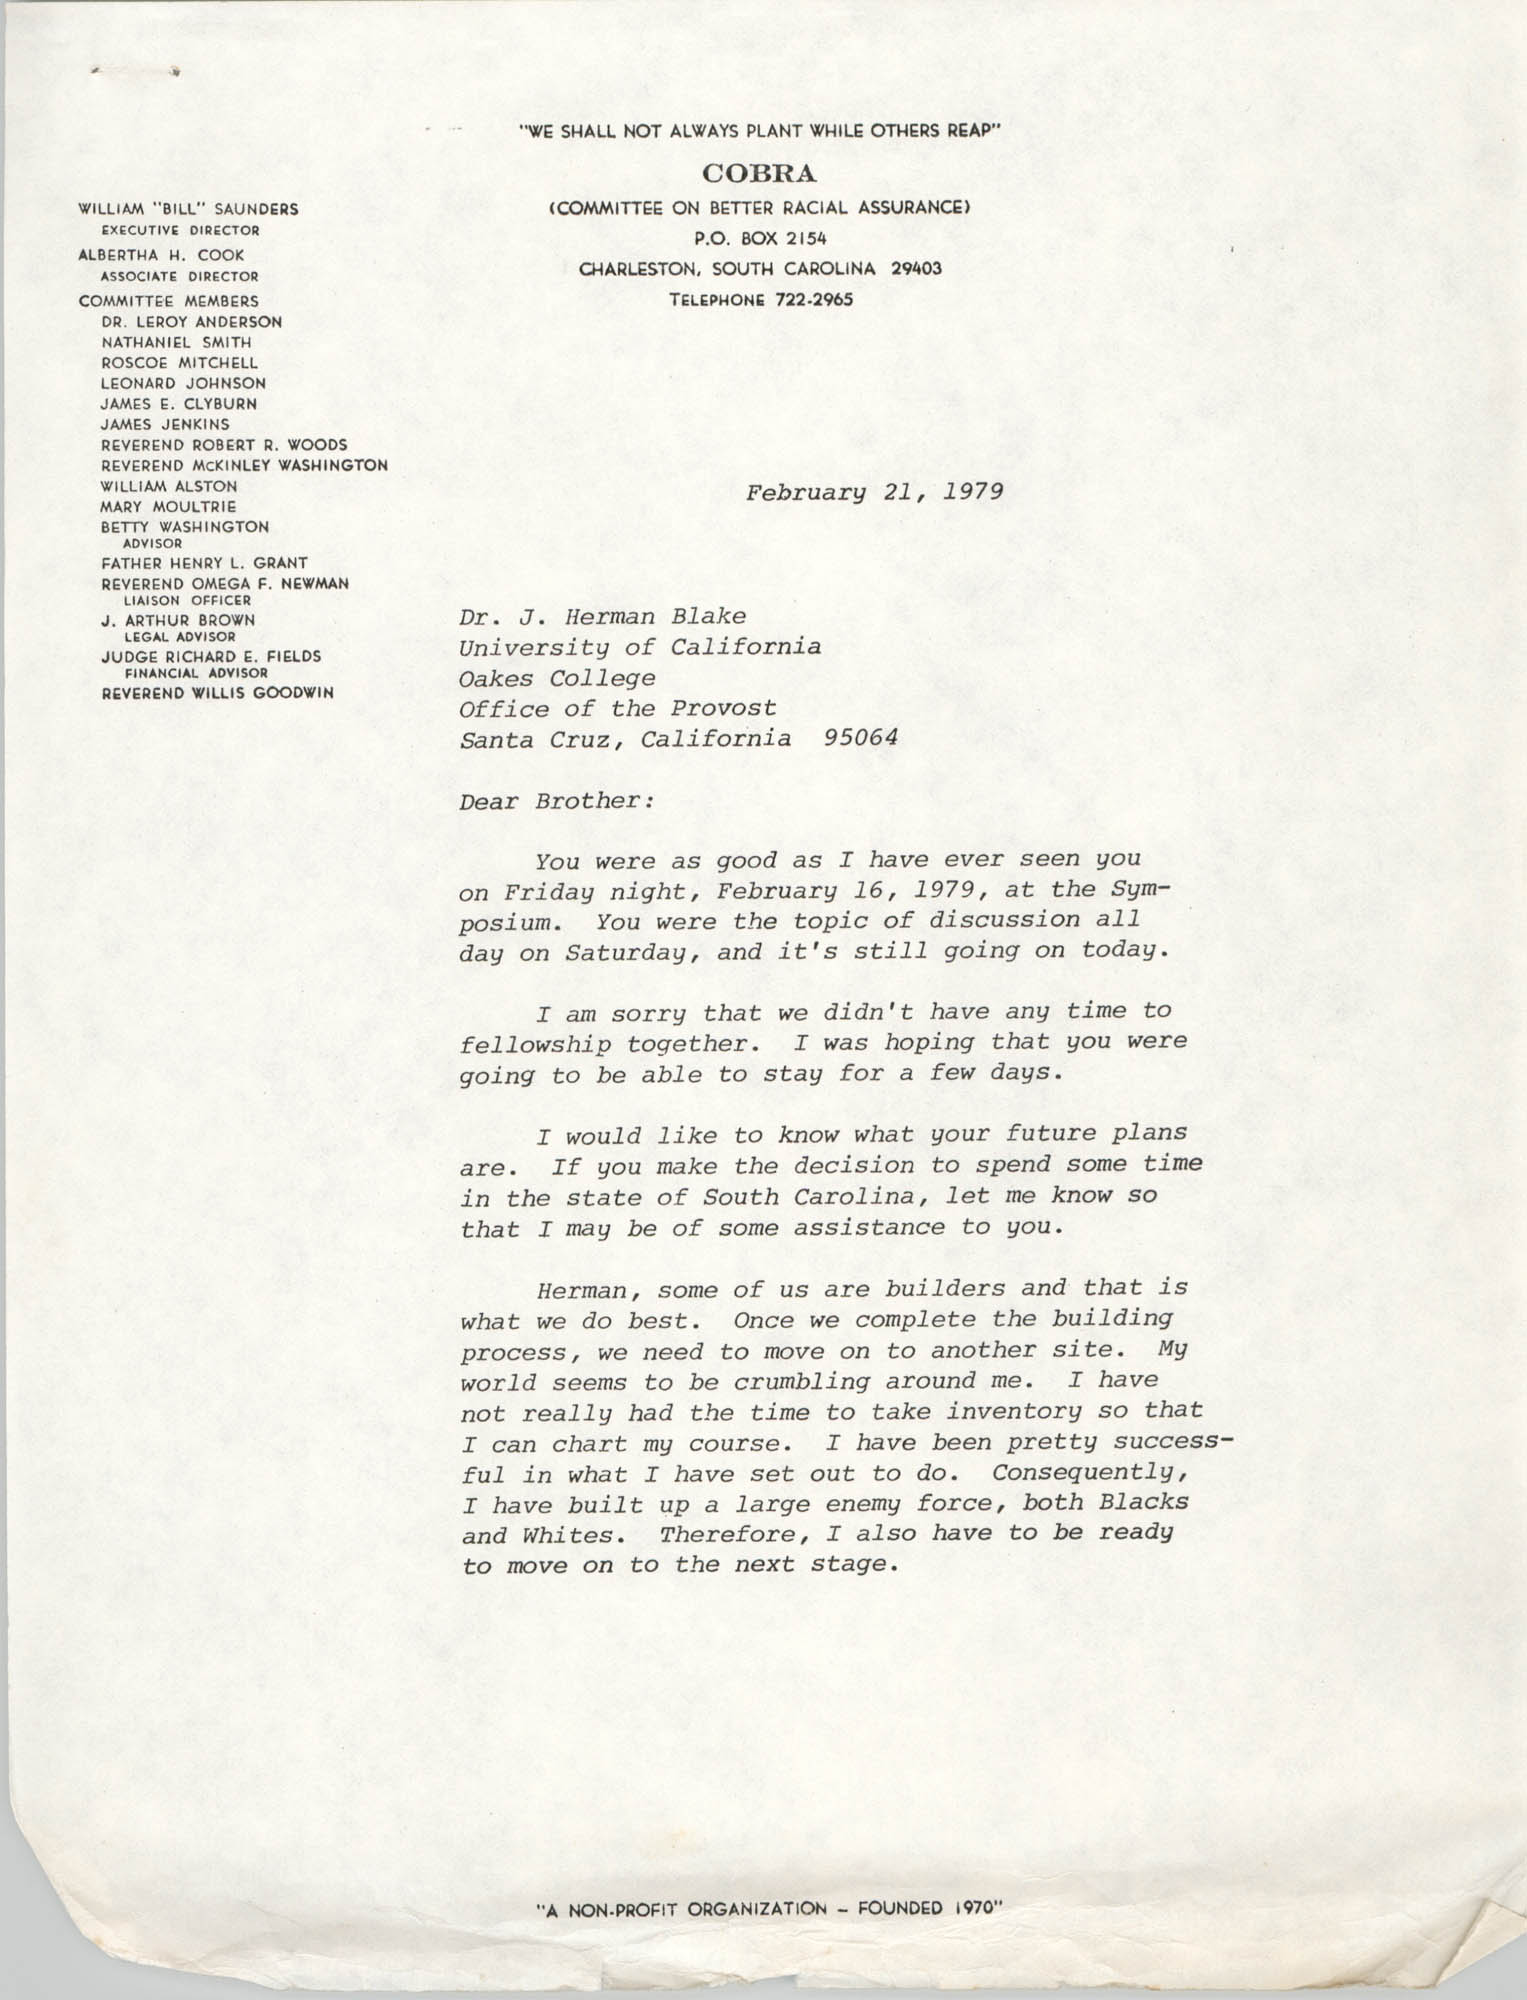 Letter from William Saunders to J. Herman Blake, February 21, 1979